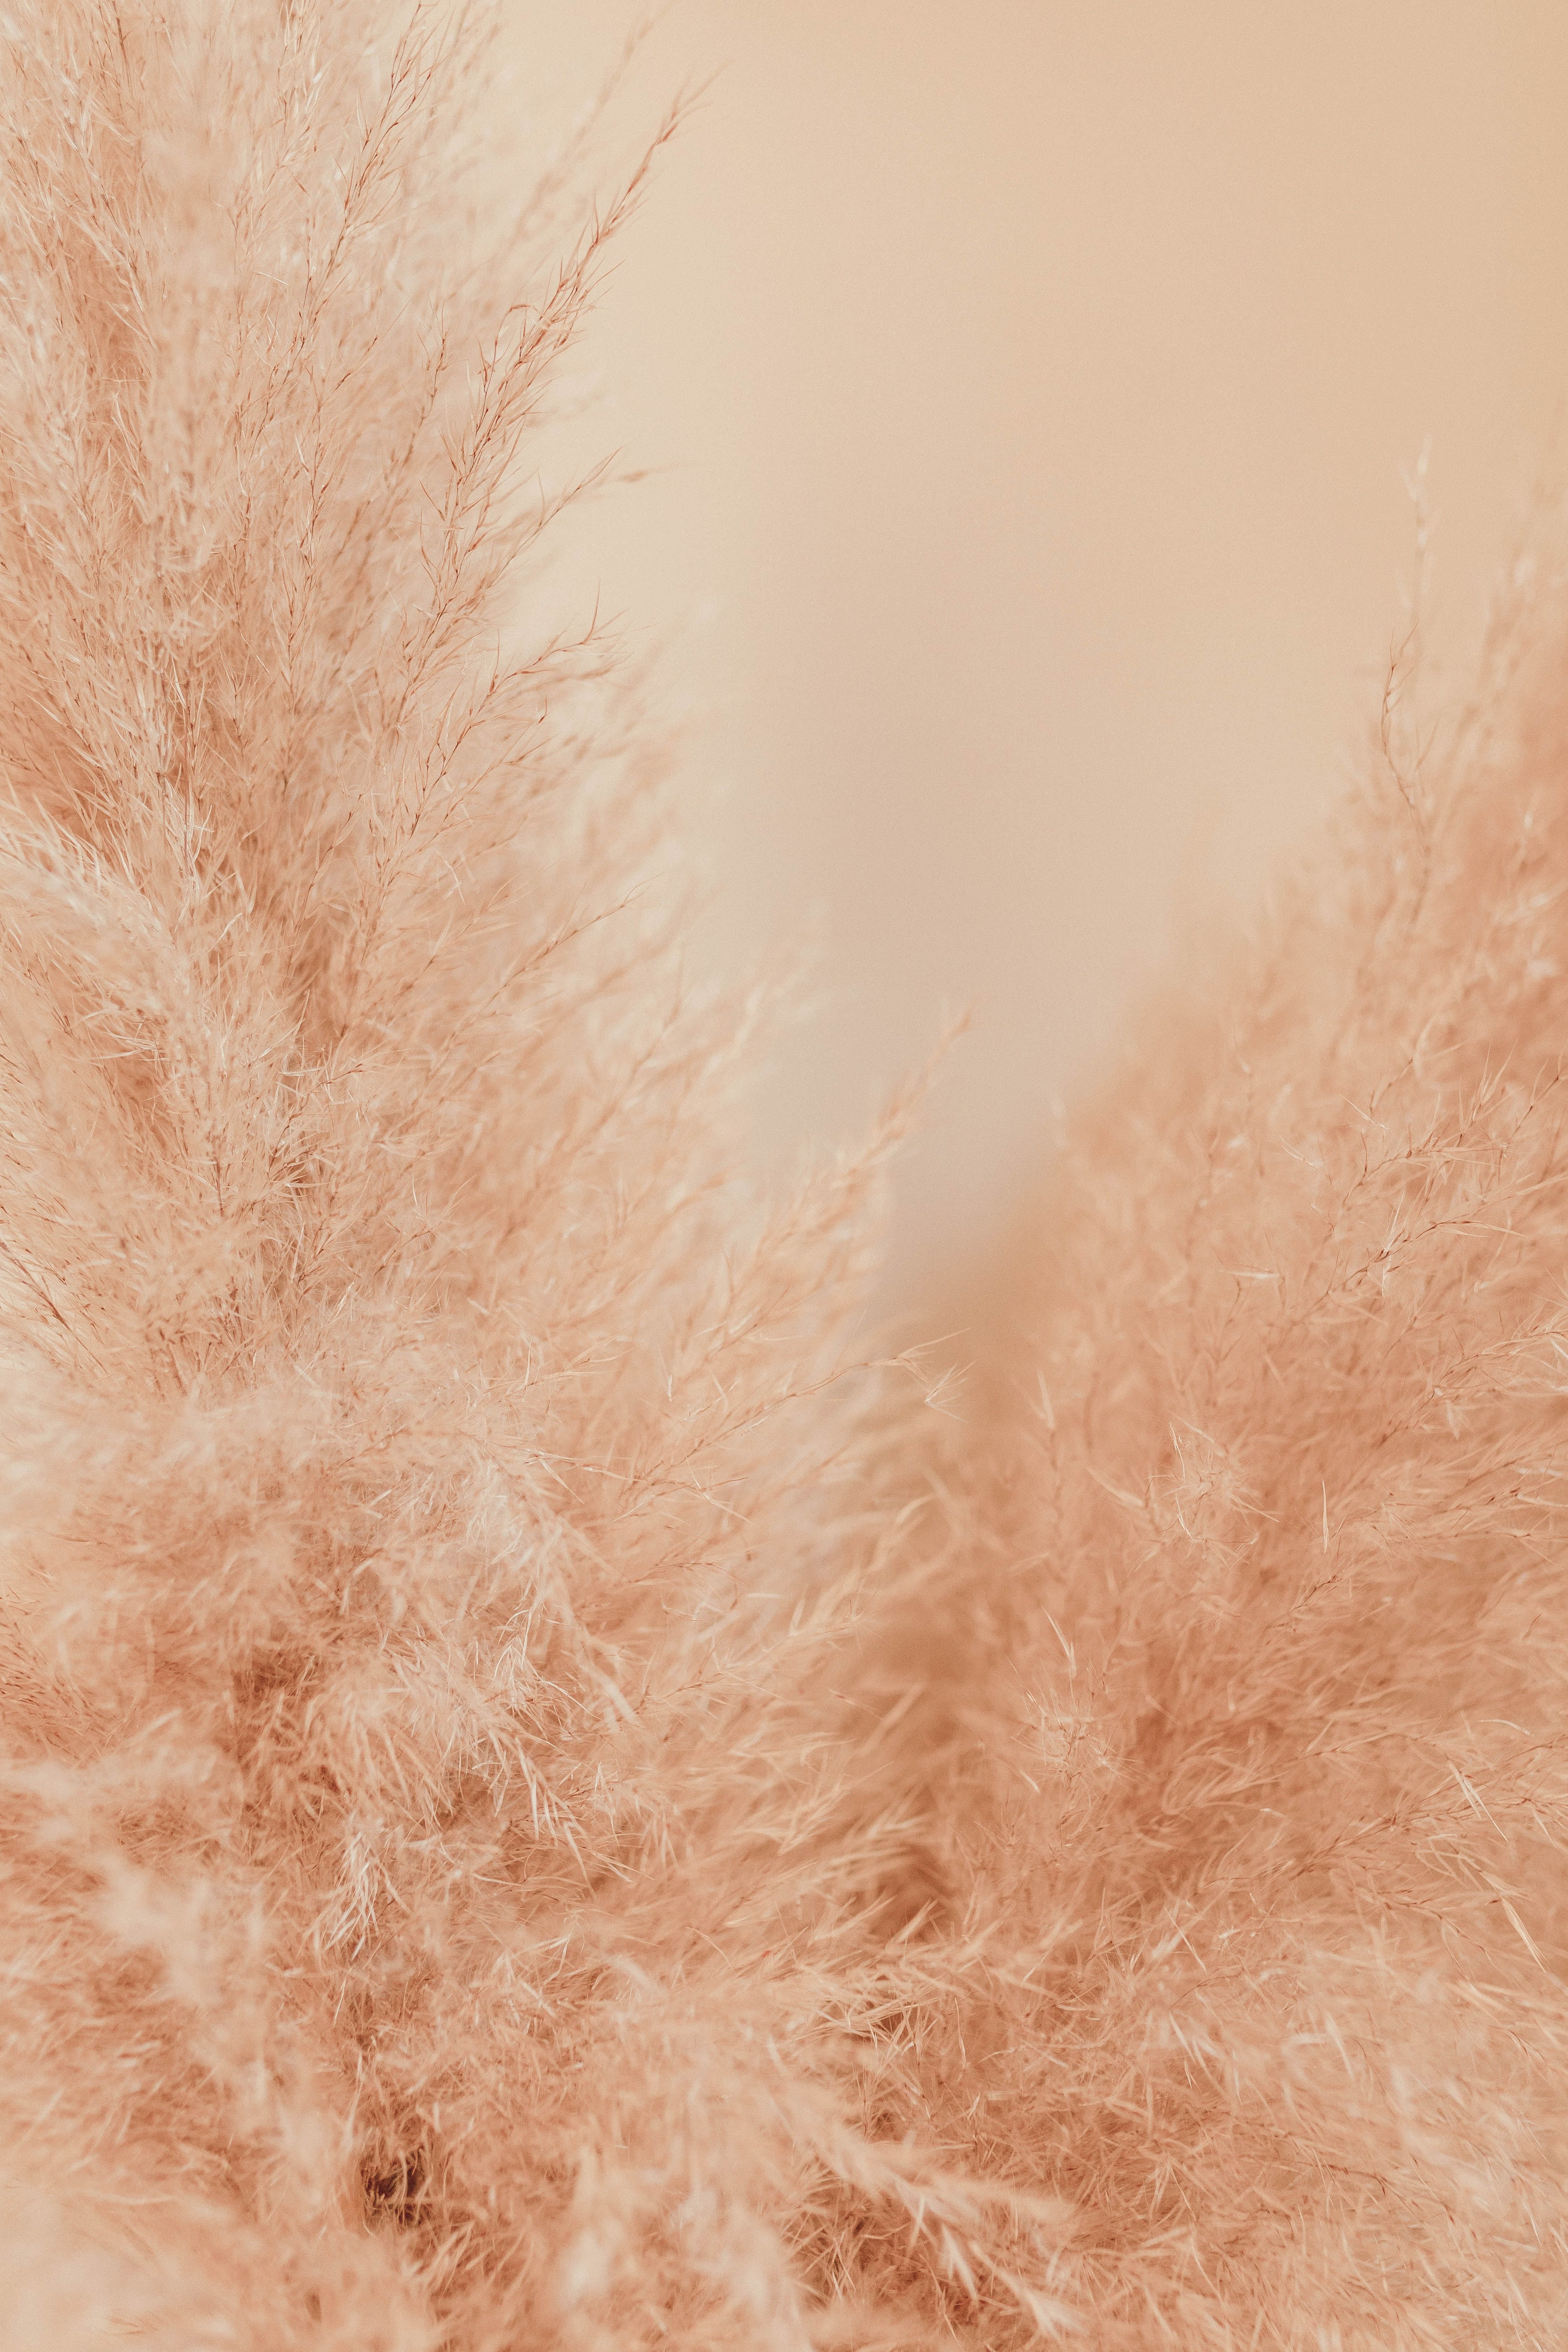 Pampas Grass Pictures Download Free Images On Unsplash In 2020 Iphone Wallpaper For Desktop Grass Wallpaper Free Background Images